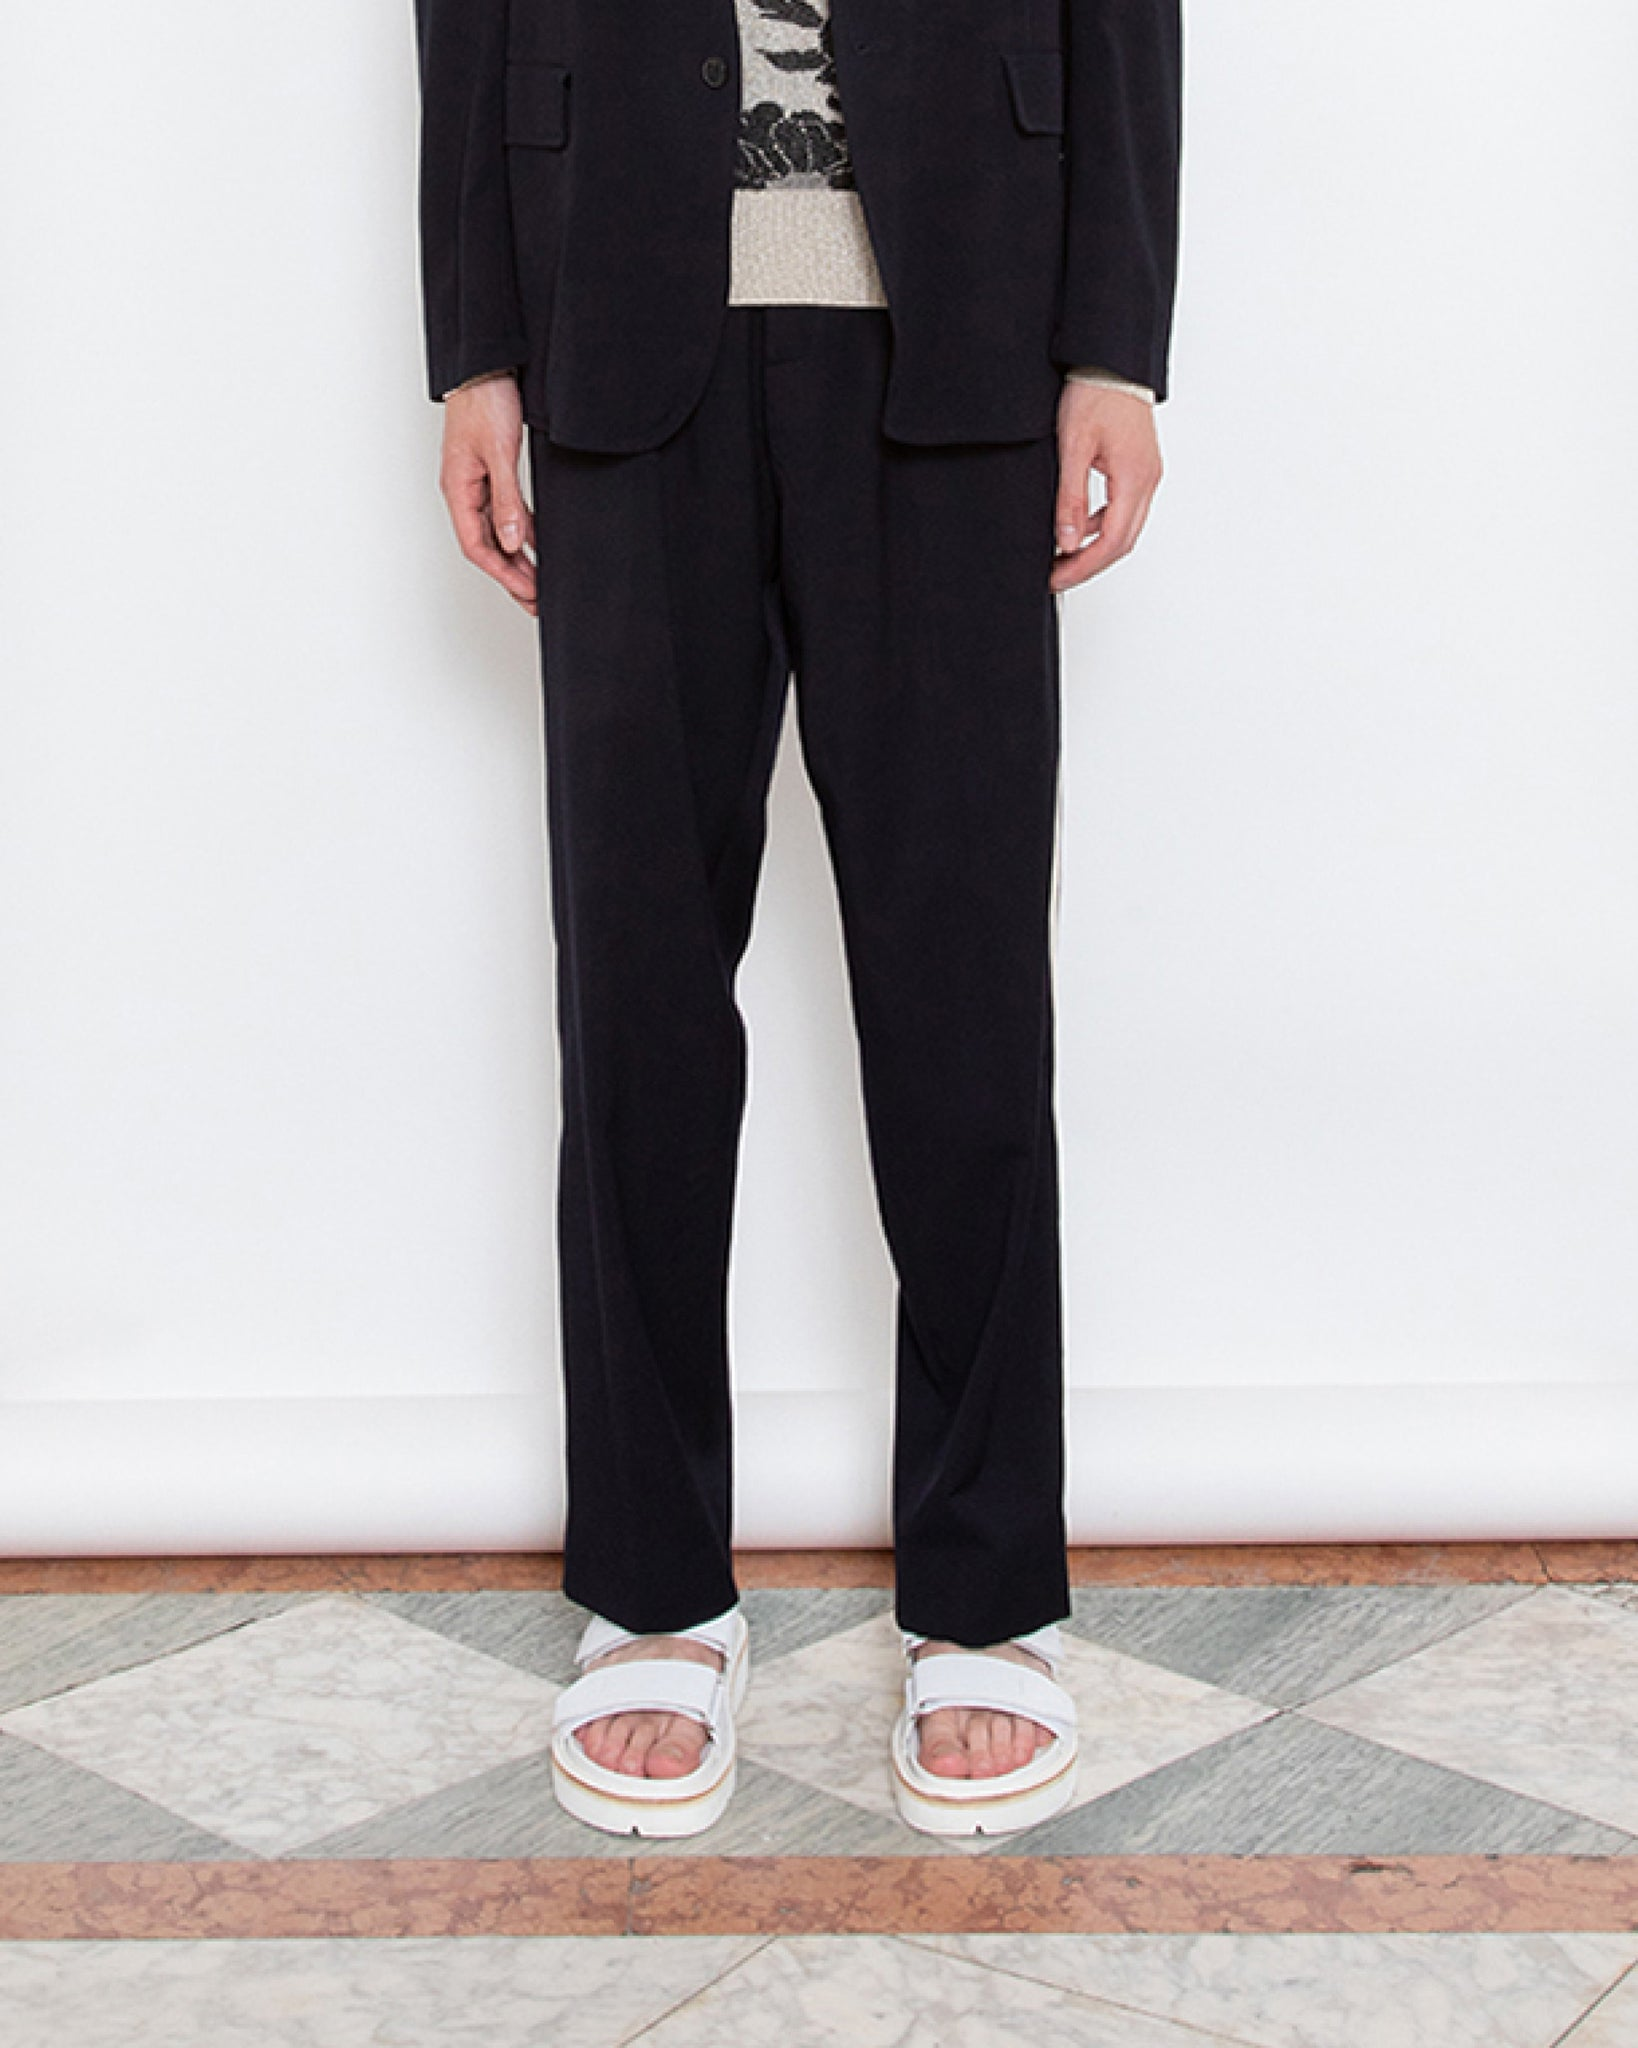 PIENY BIS loose fit trouser